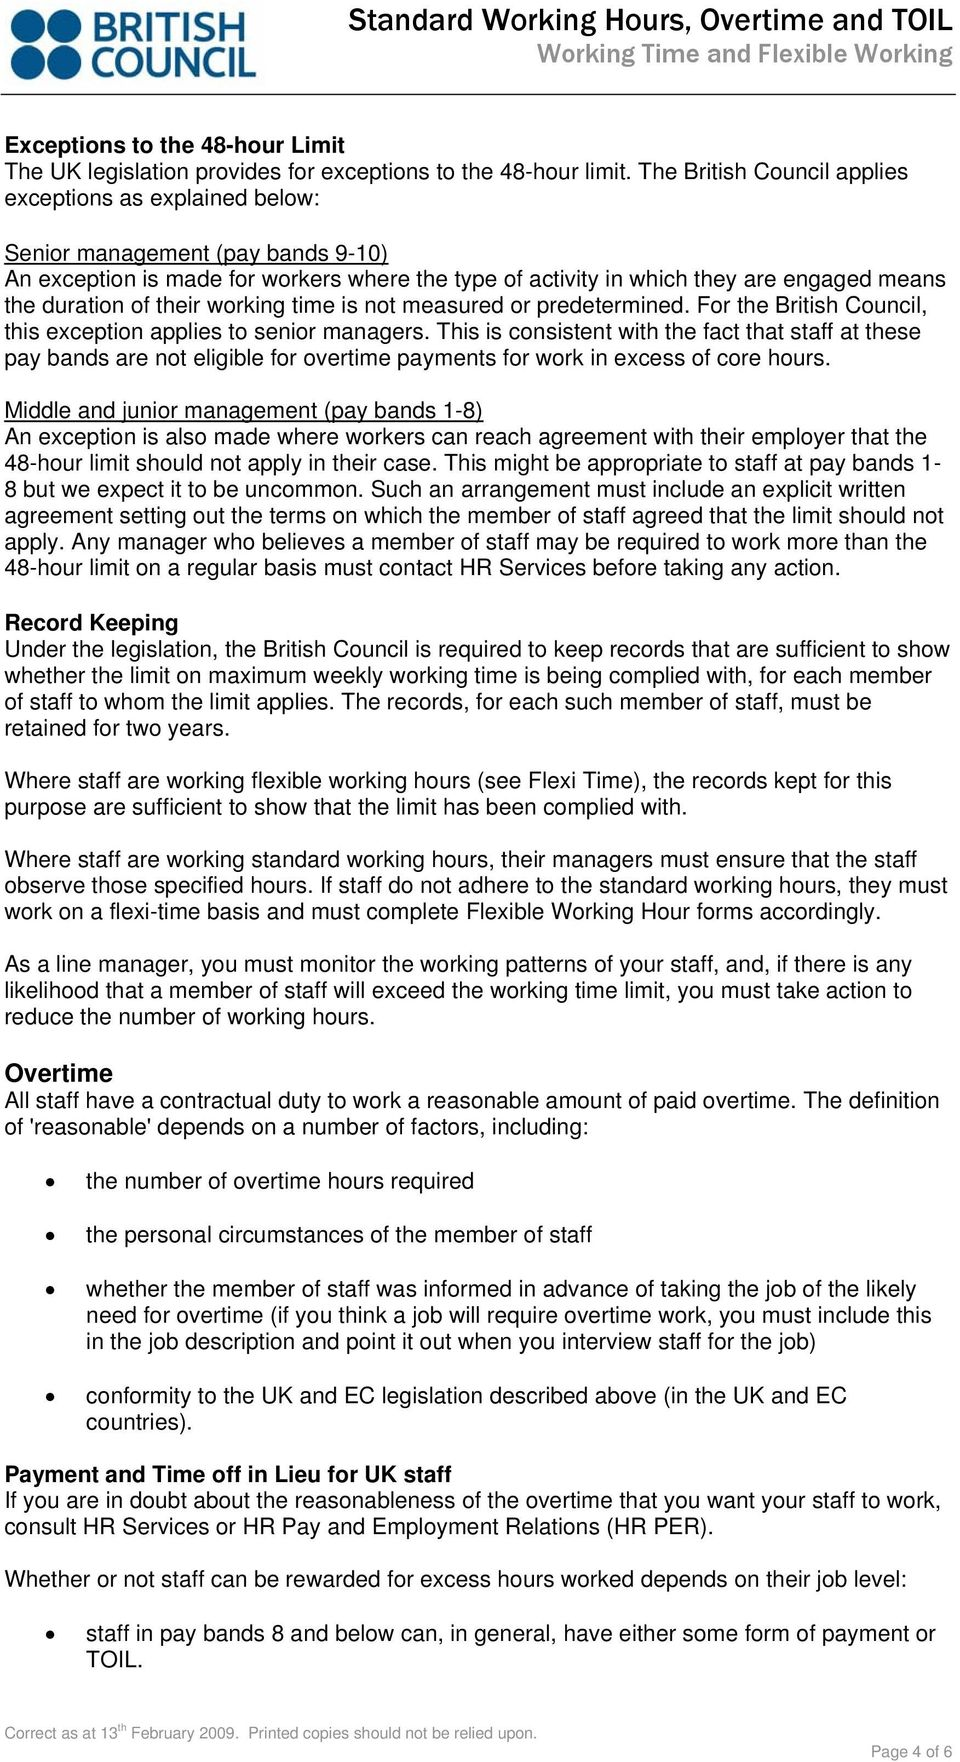 Standard Working Hours, Overtime and TOIL - PDF